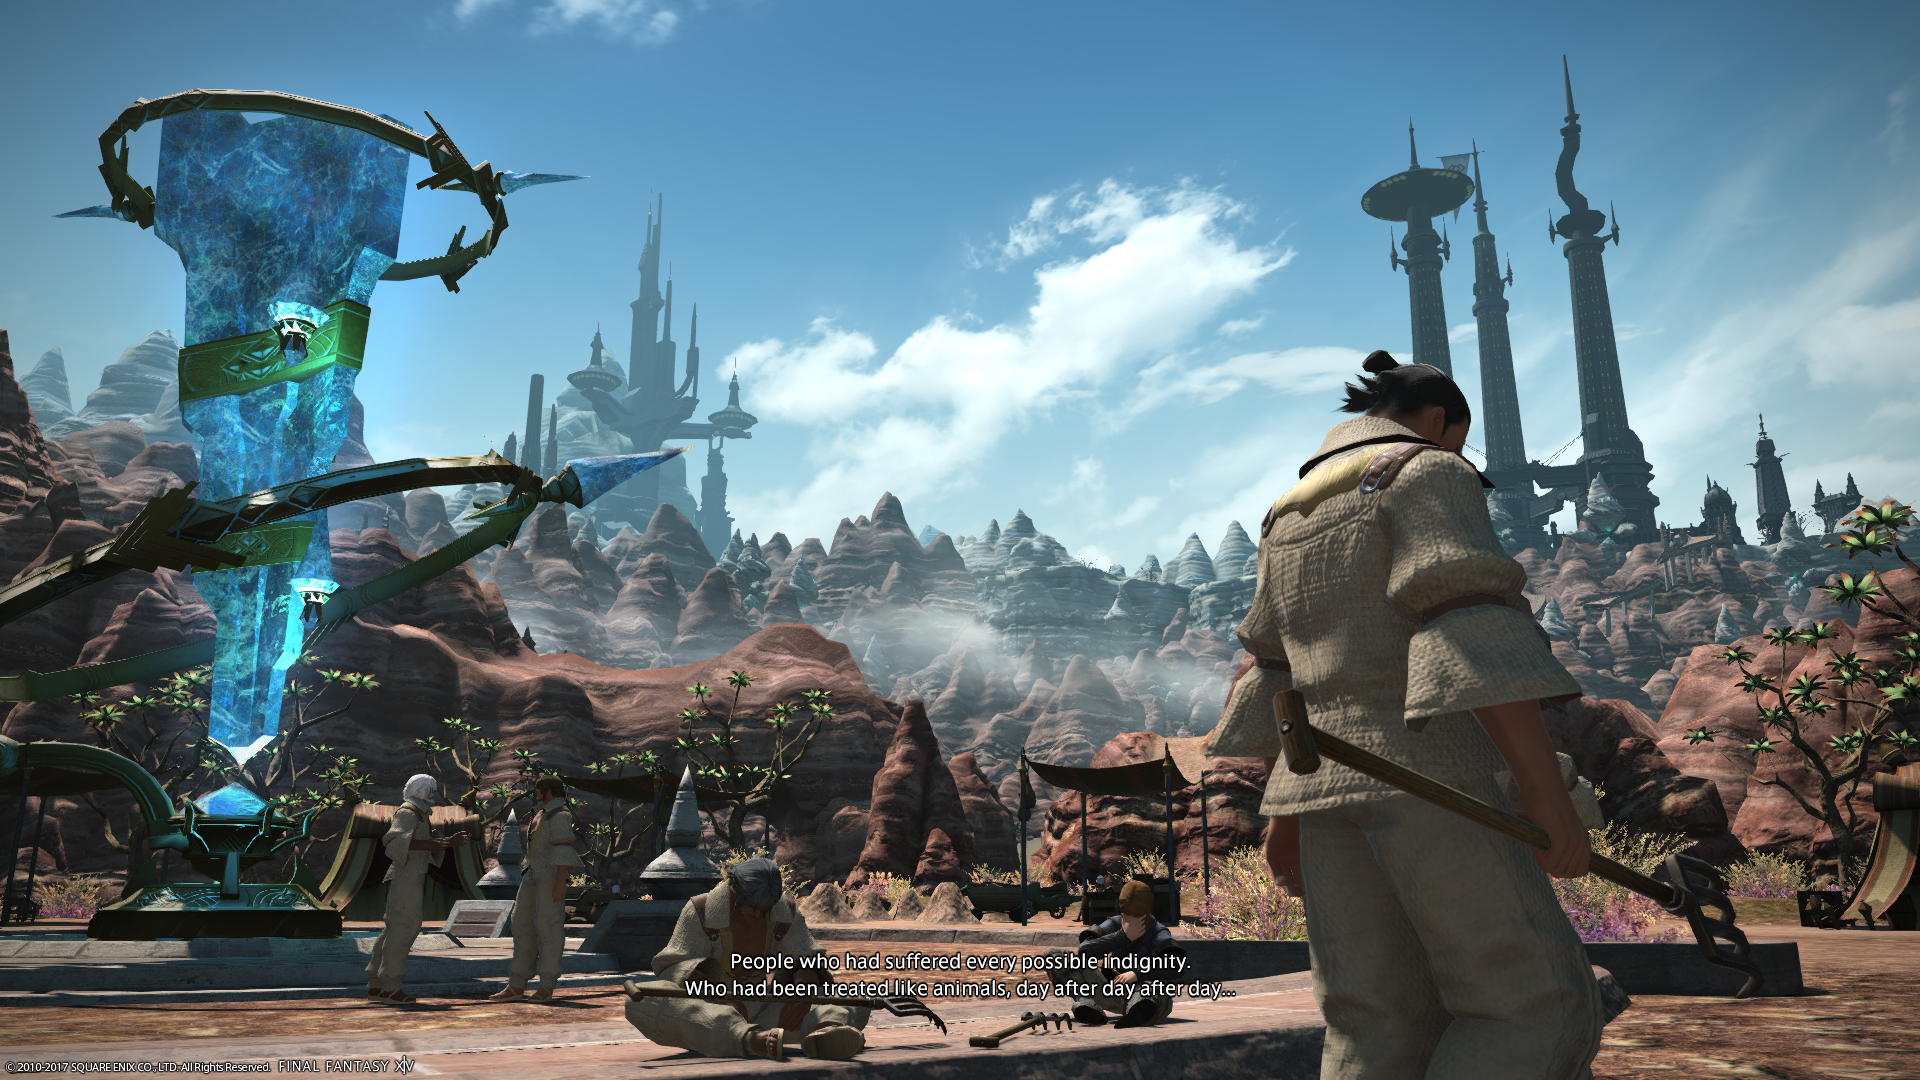 Final Fantasy XIV: Stormblood makes its colonialism as awful